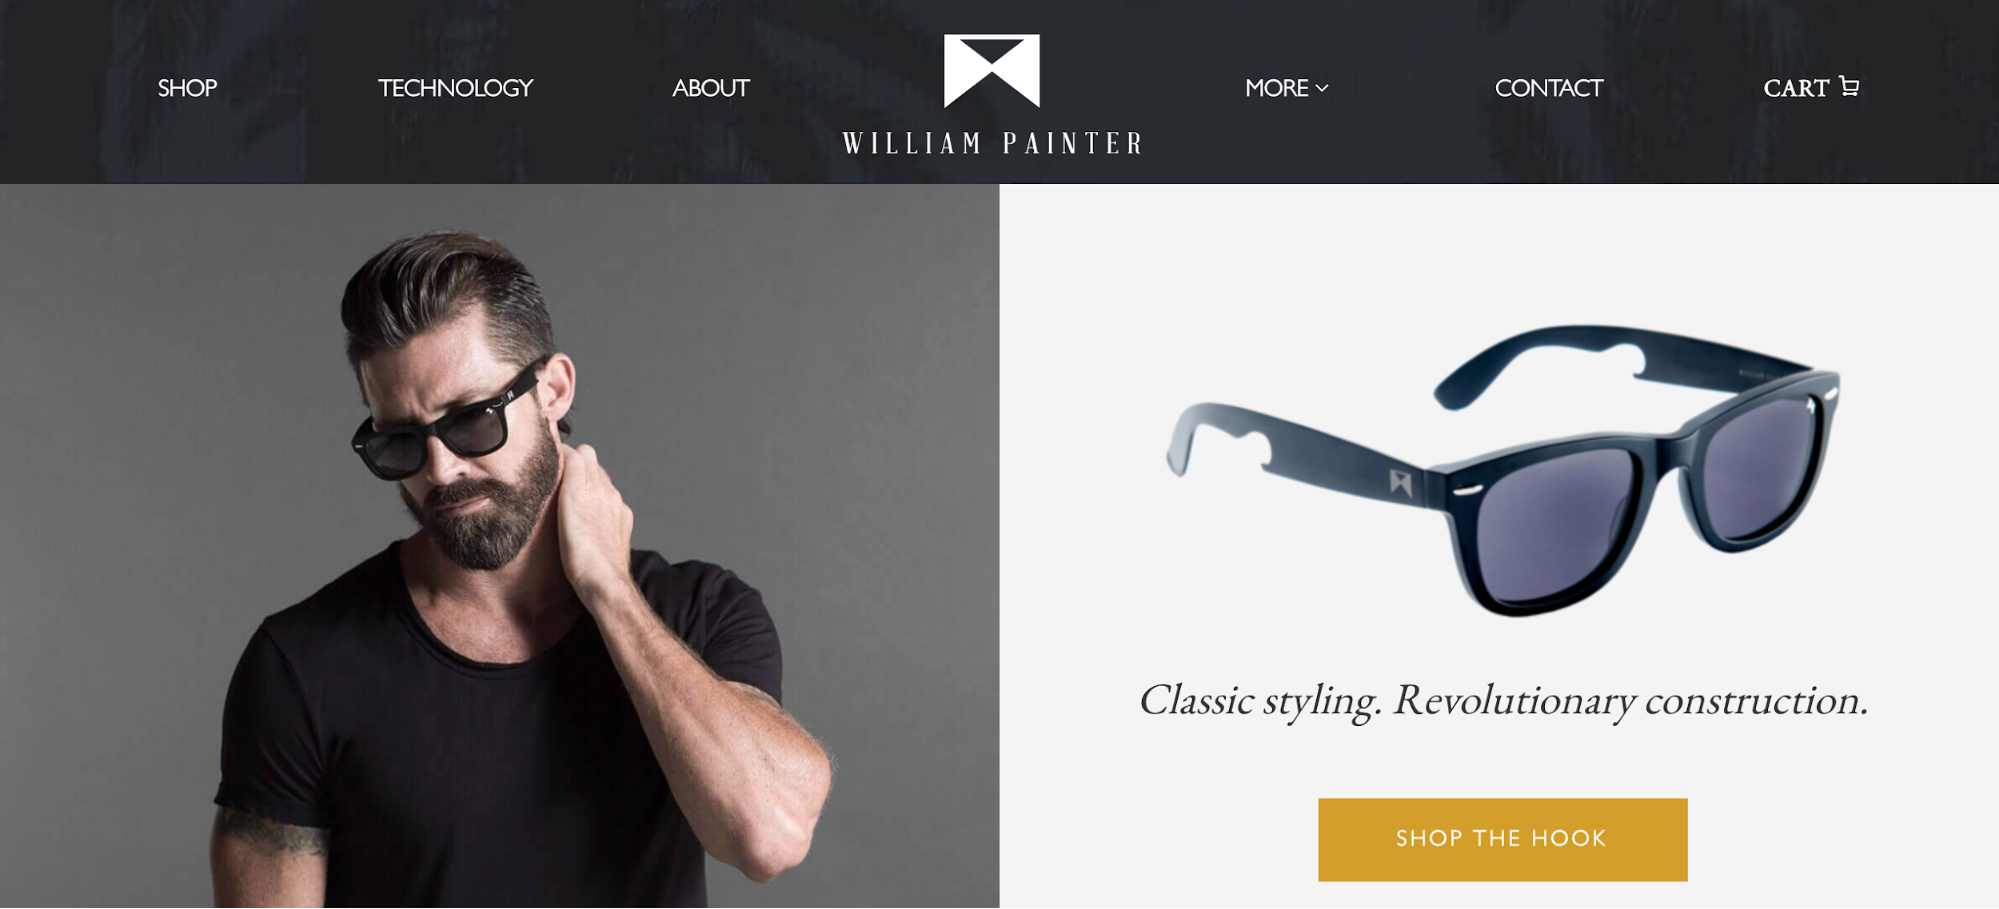 bf0d1483c6 How William Painter Increased Ecommerce Sales By  50